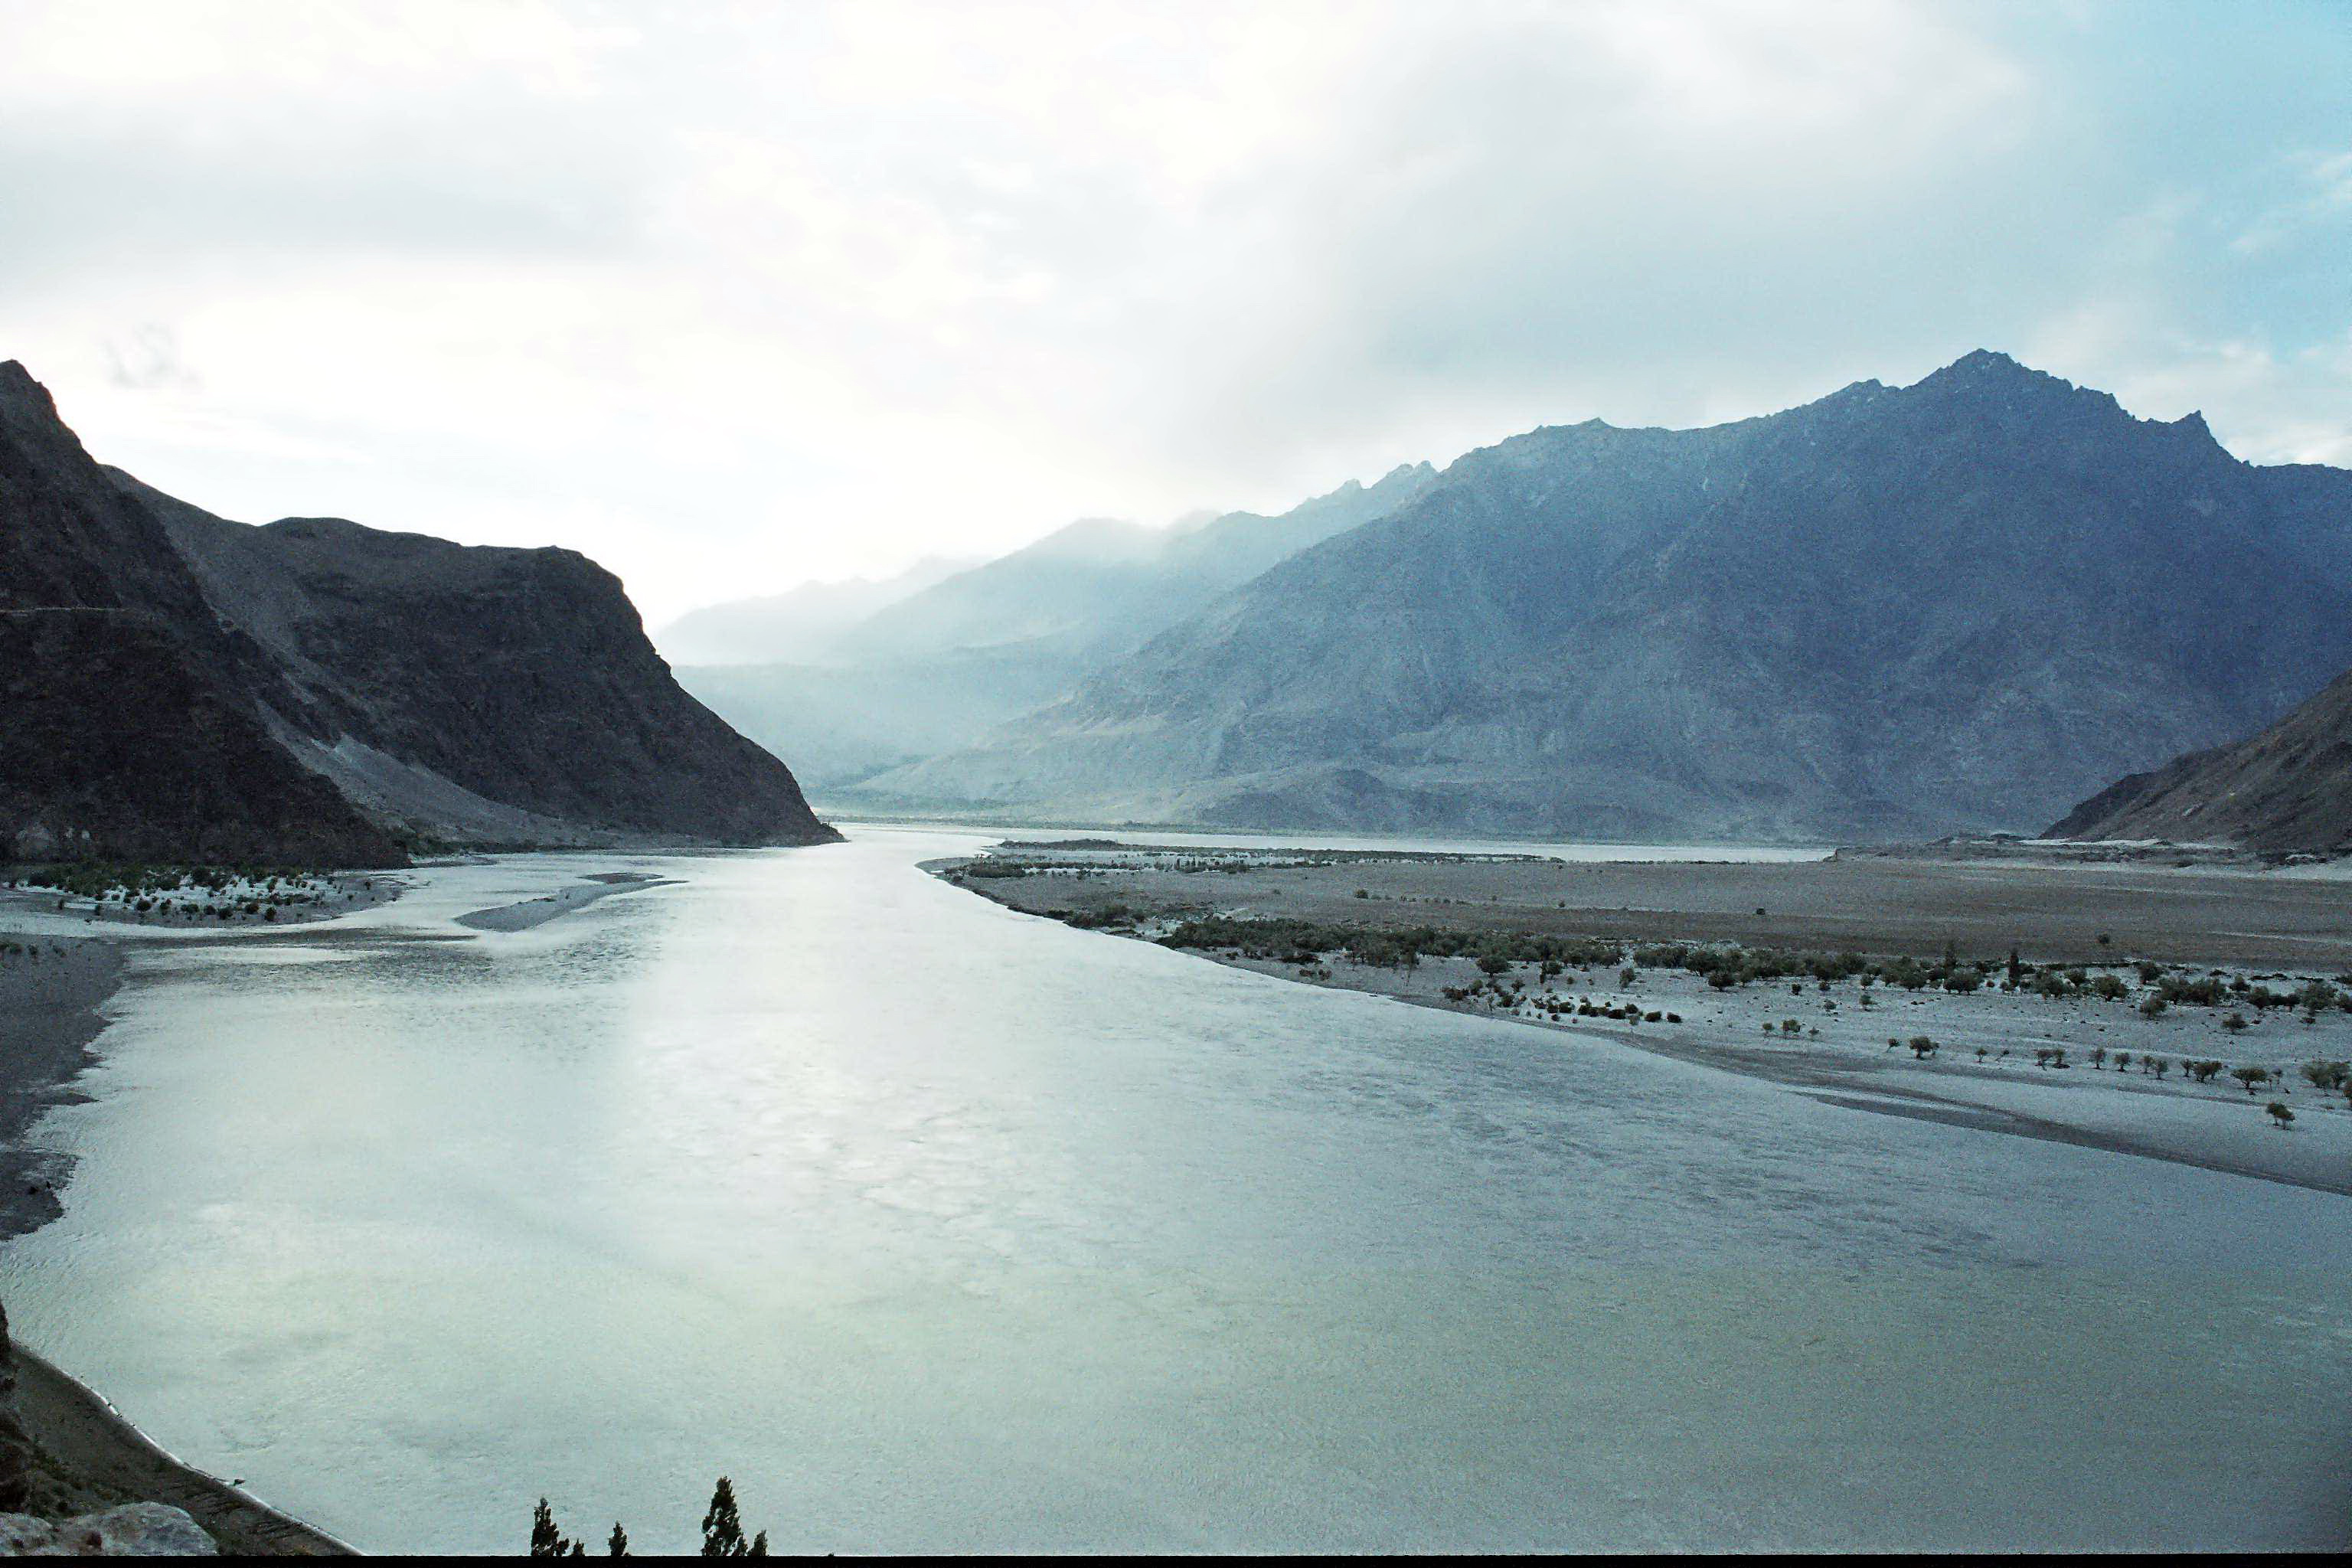 Indus – longest river in the world